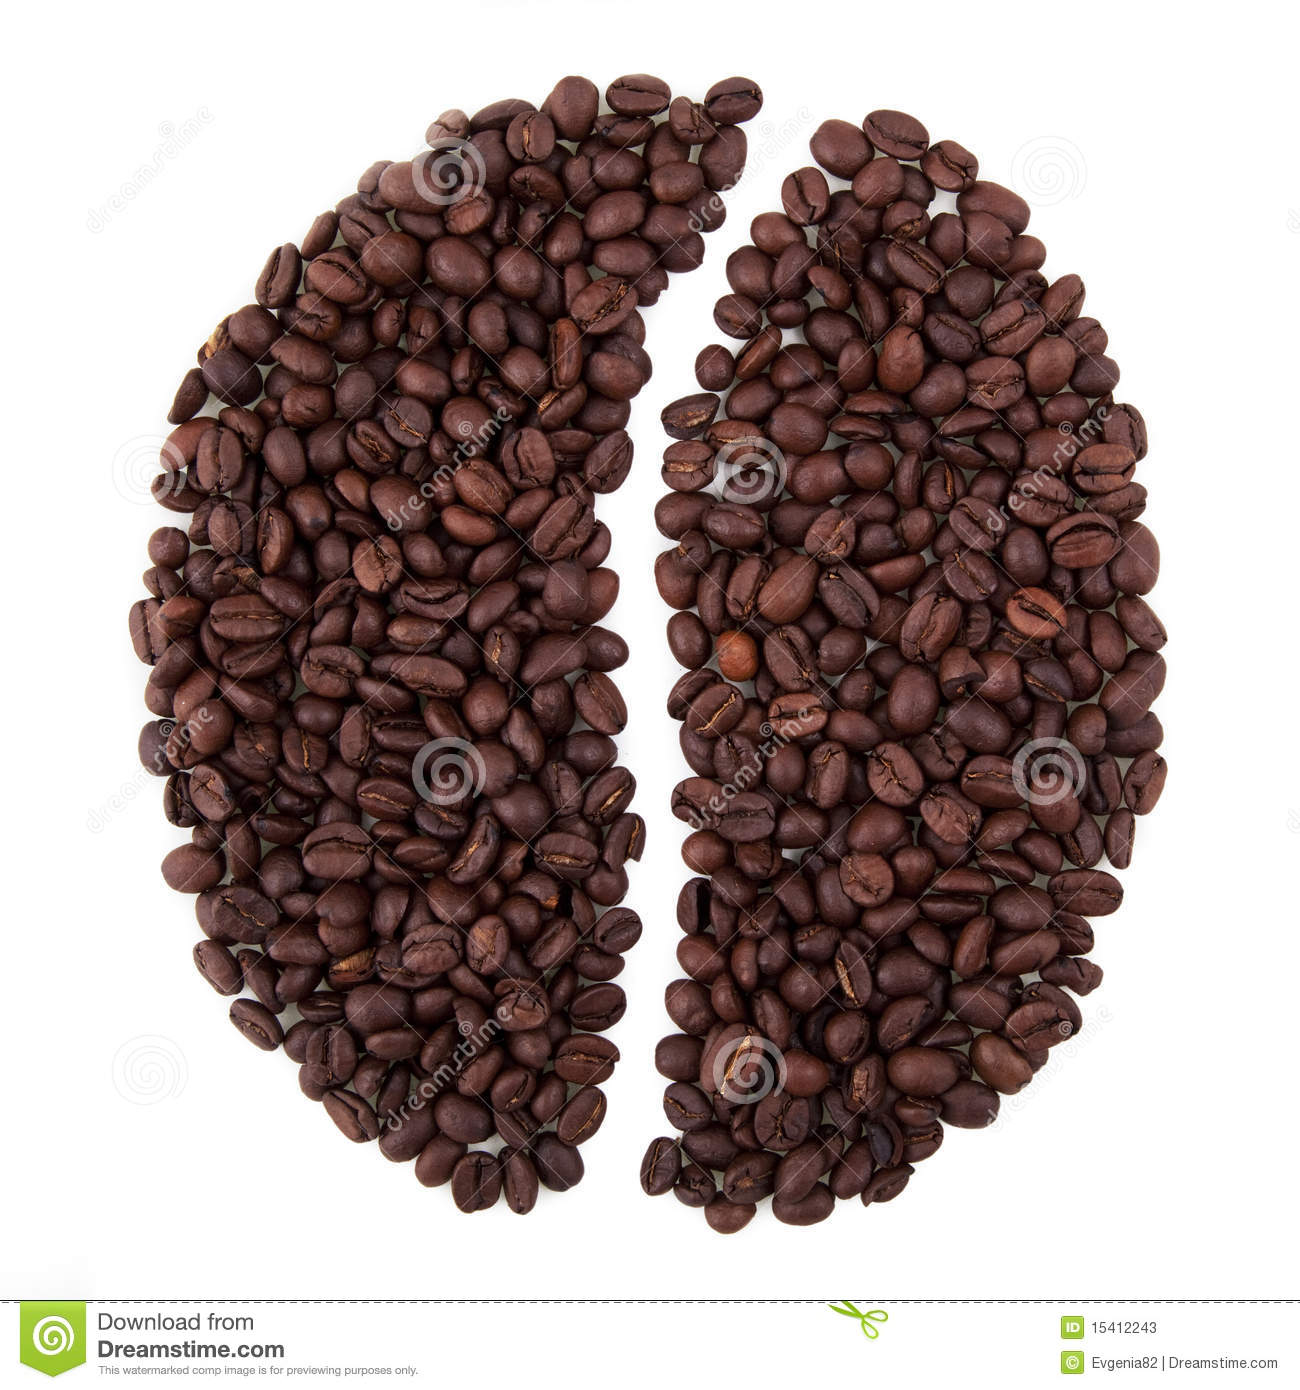 Coffee bean shape made from many coffee beans.